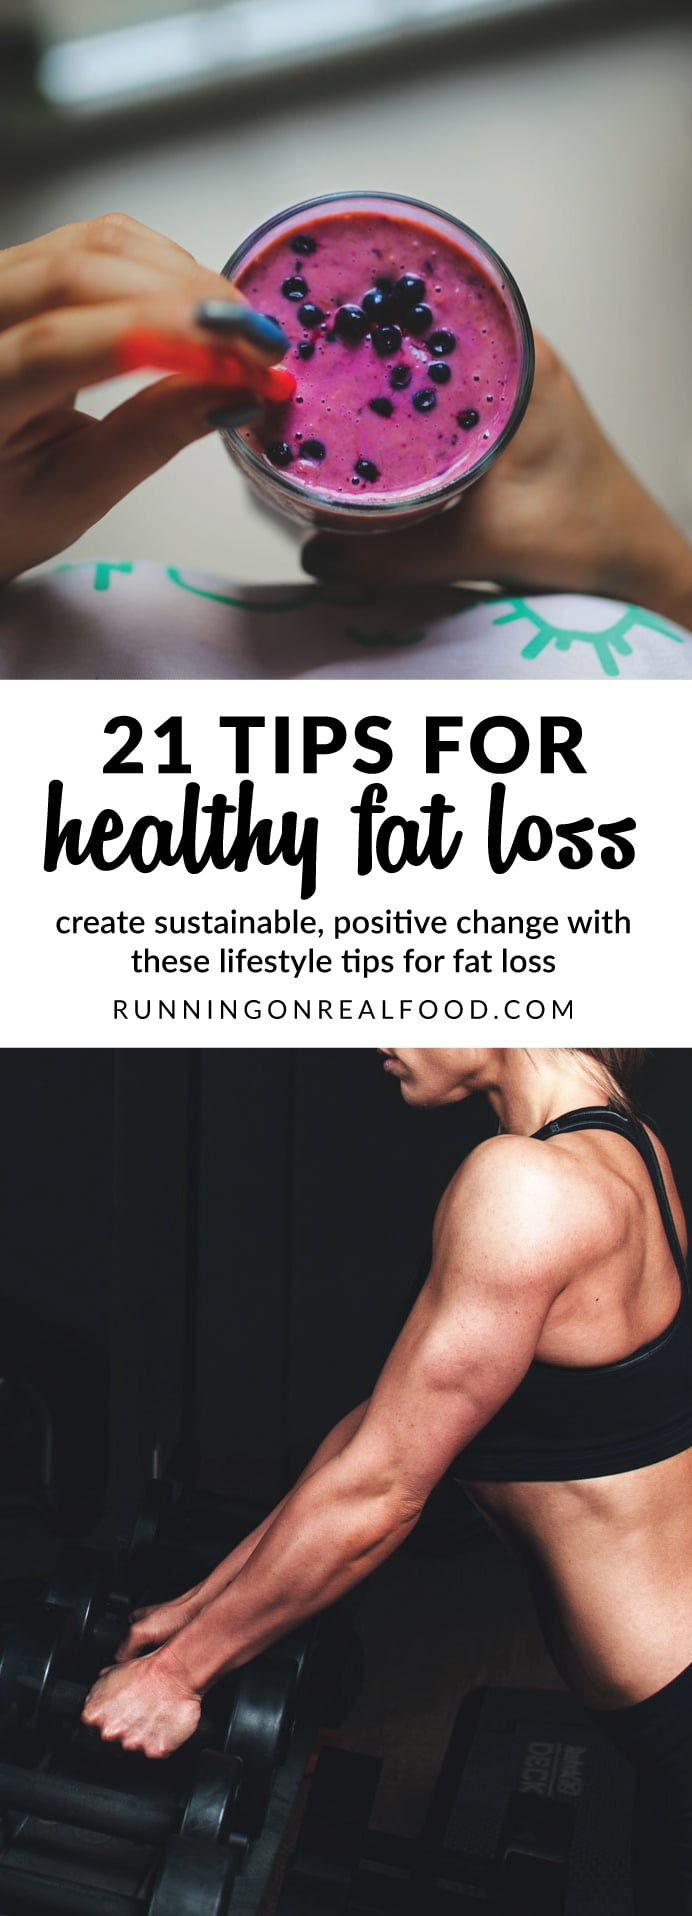 Feel great, lose weight and make progress towards your body composition goals in a healthy and sustainable way with these tips for healthy fat loss.